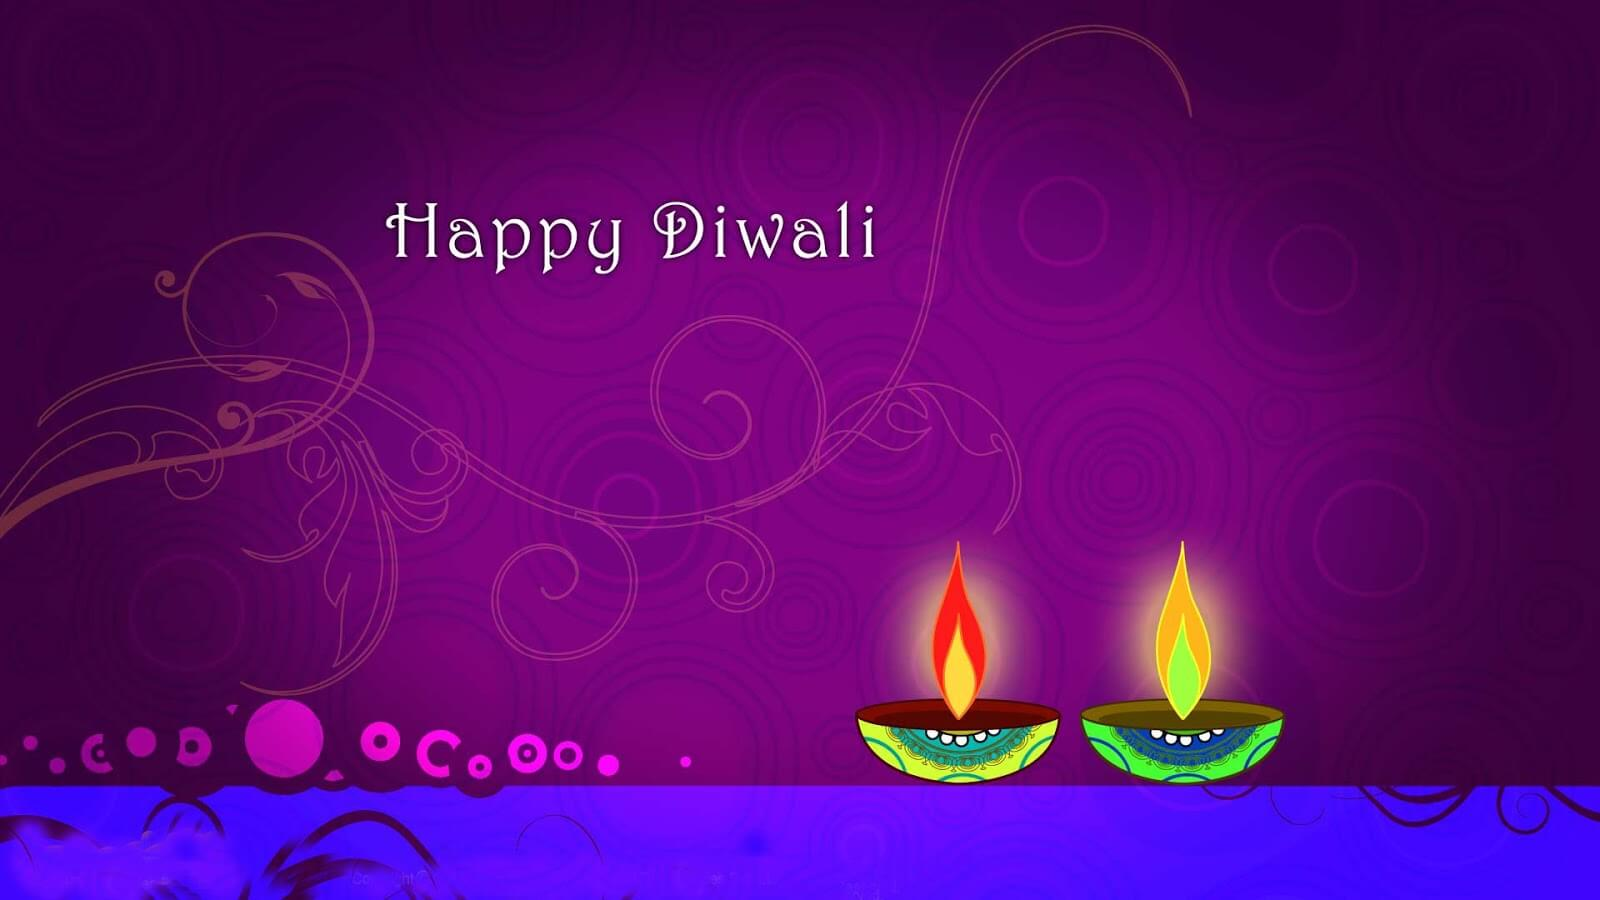 Diwali Wallpaper 2016